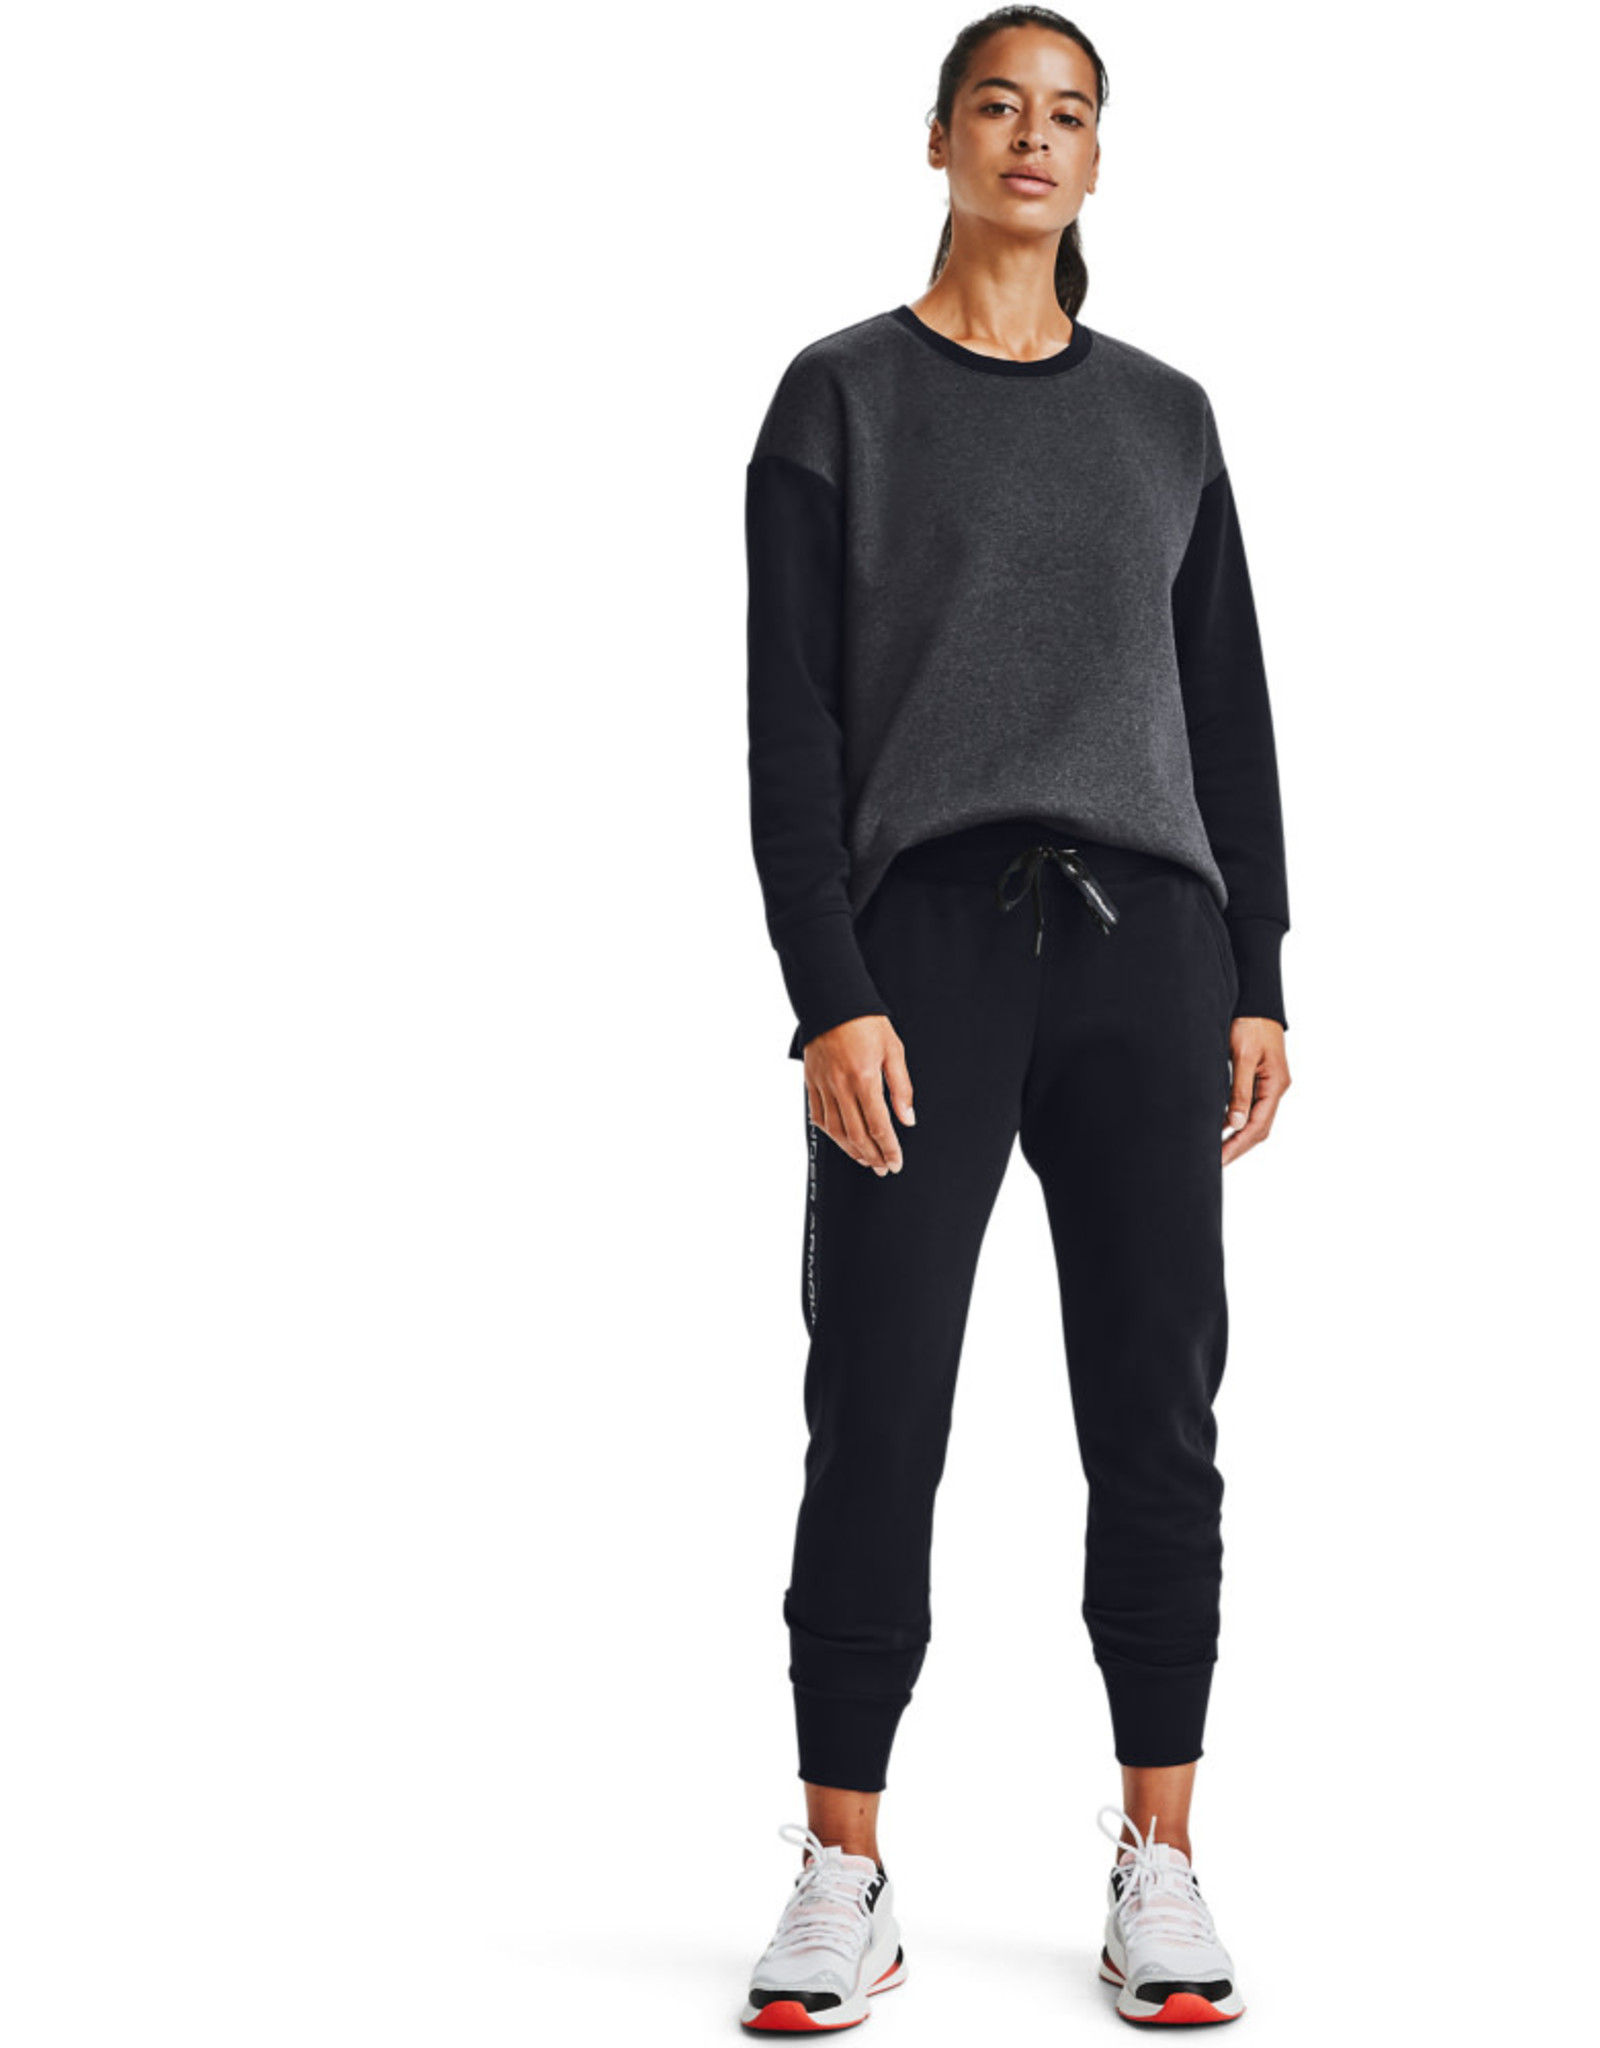 Under Armour UA Rival Fleece EMB Pant - Black-Black-Black